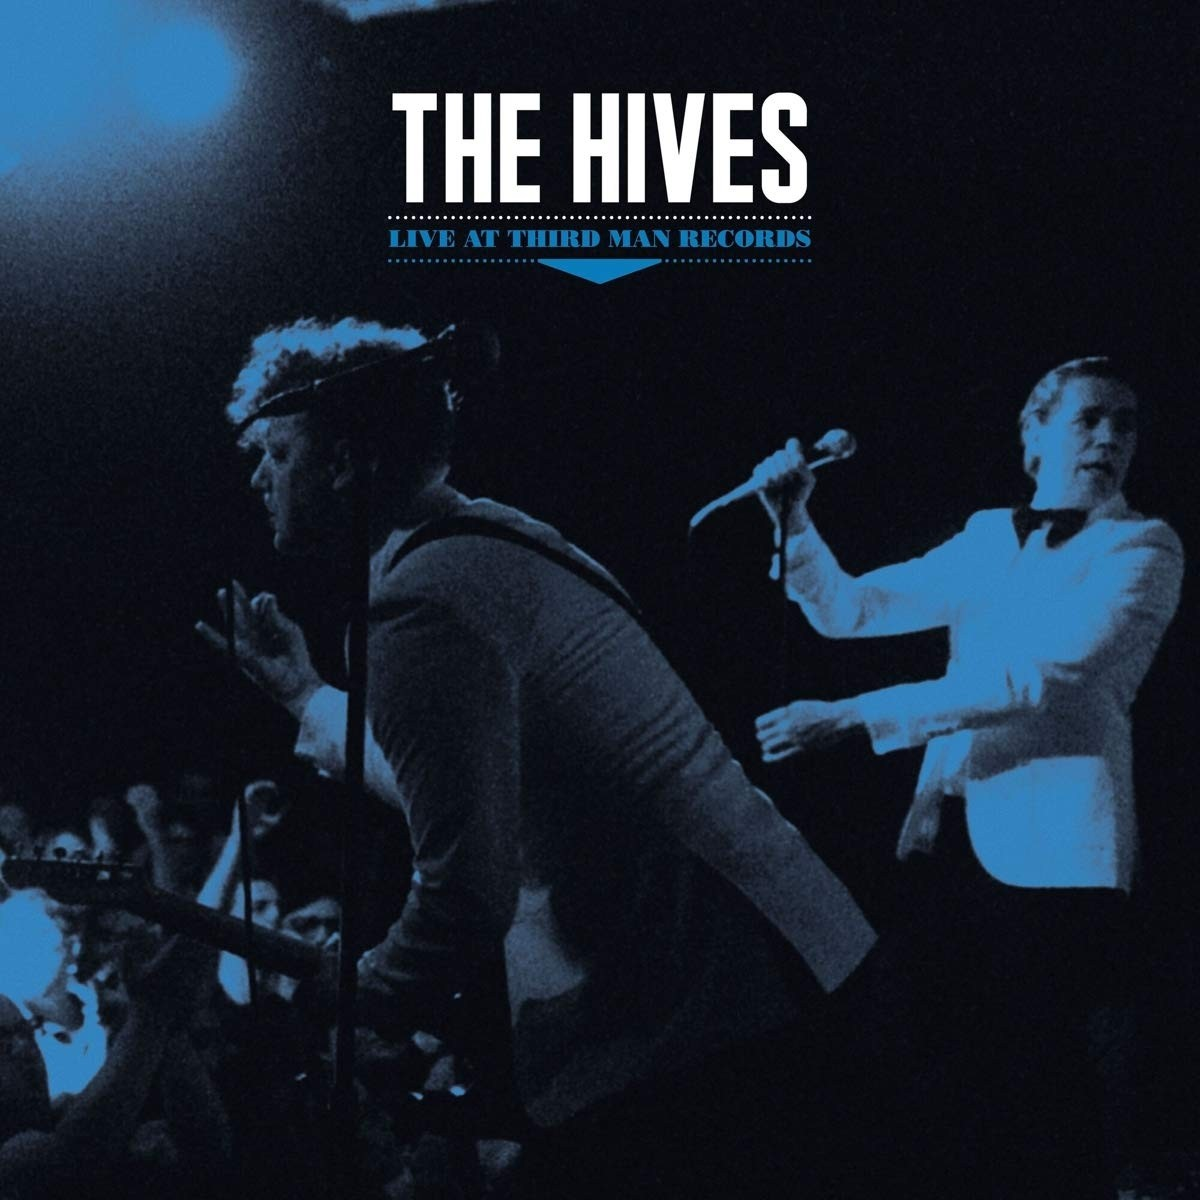 The Hives - Live At Third Man Records Vinyl LP